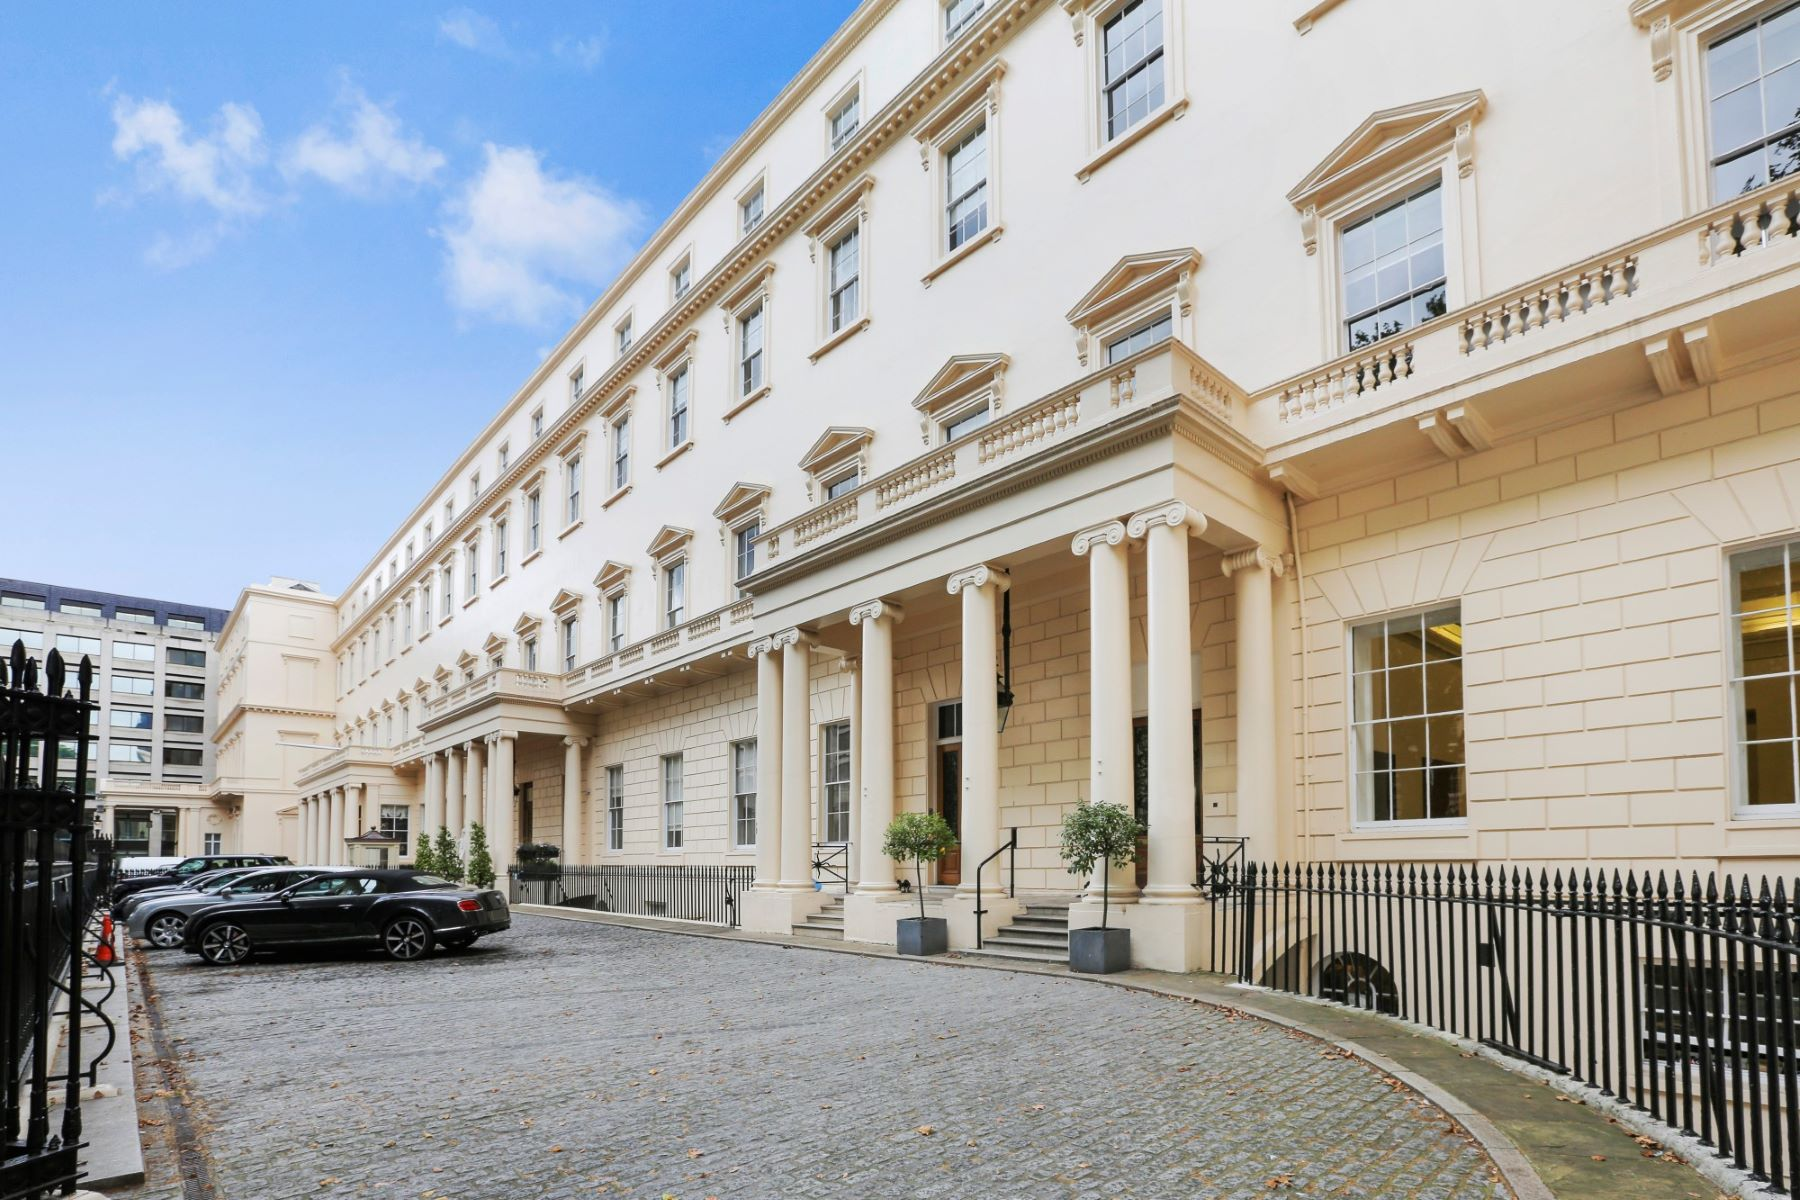 Apartment for Sale at Carlton House Terrace, St James's London, England, United Kingdom